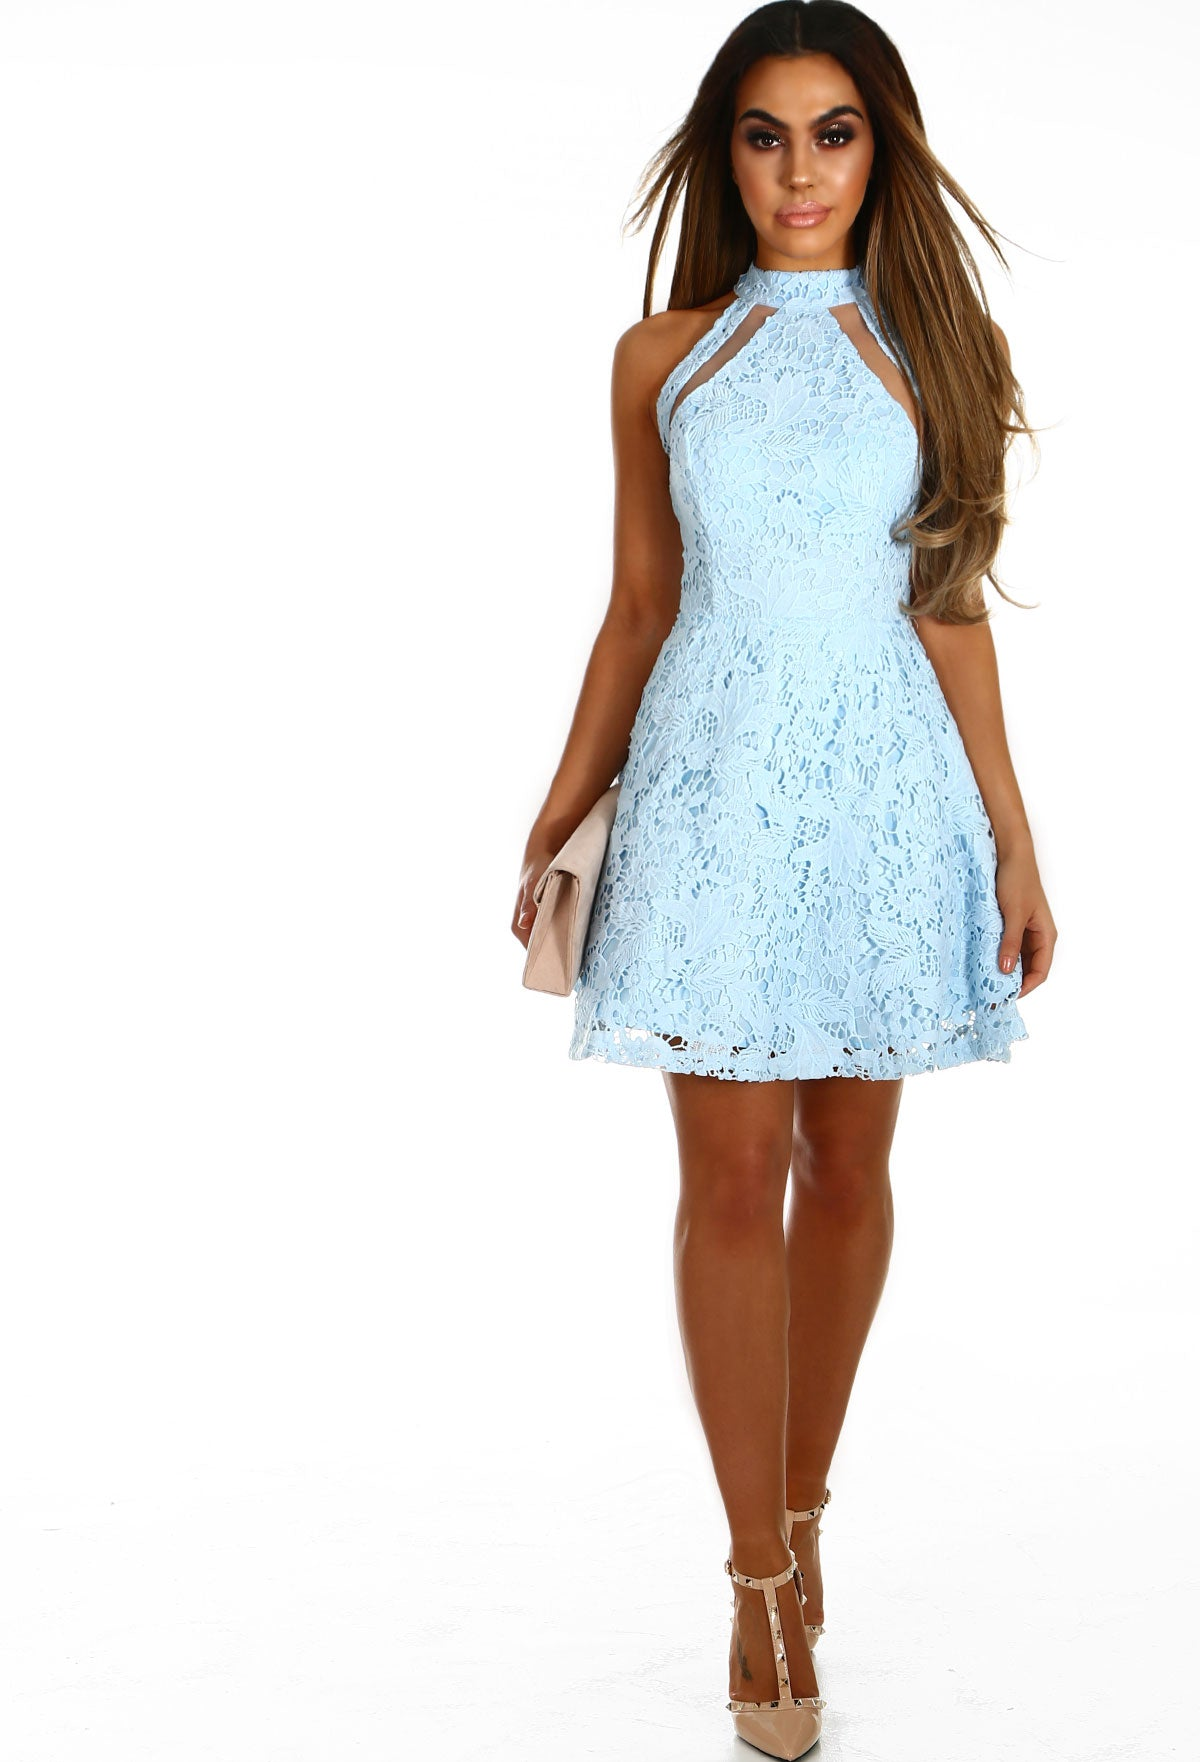 More Than Friends Baby Blue Crochet Skater Dress Pink Boutique Uk